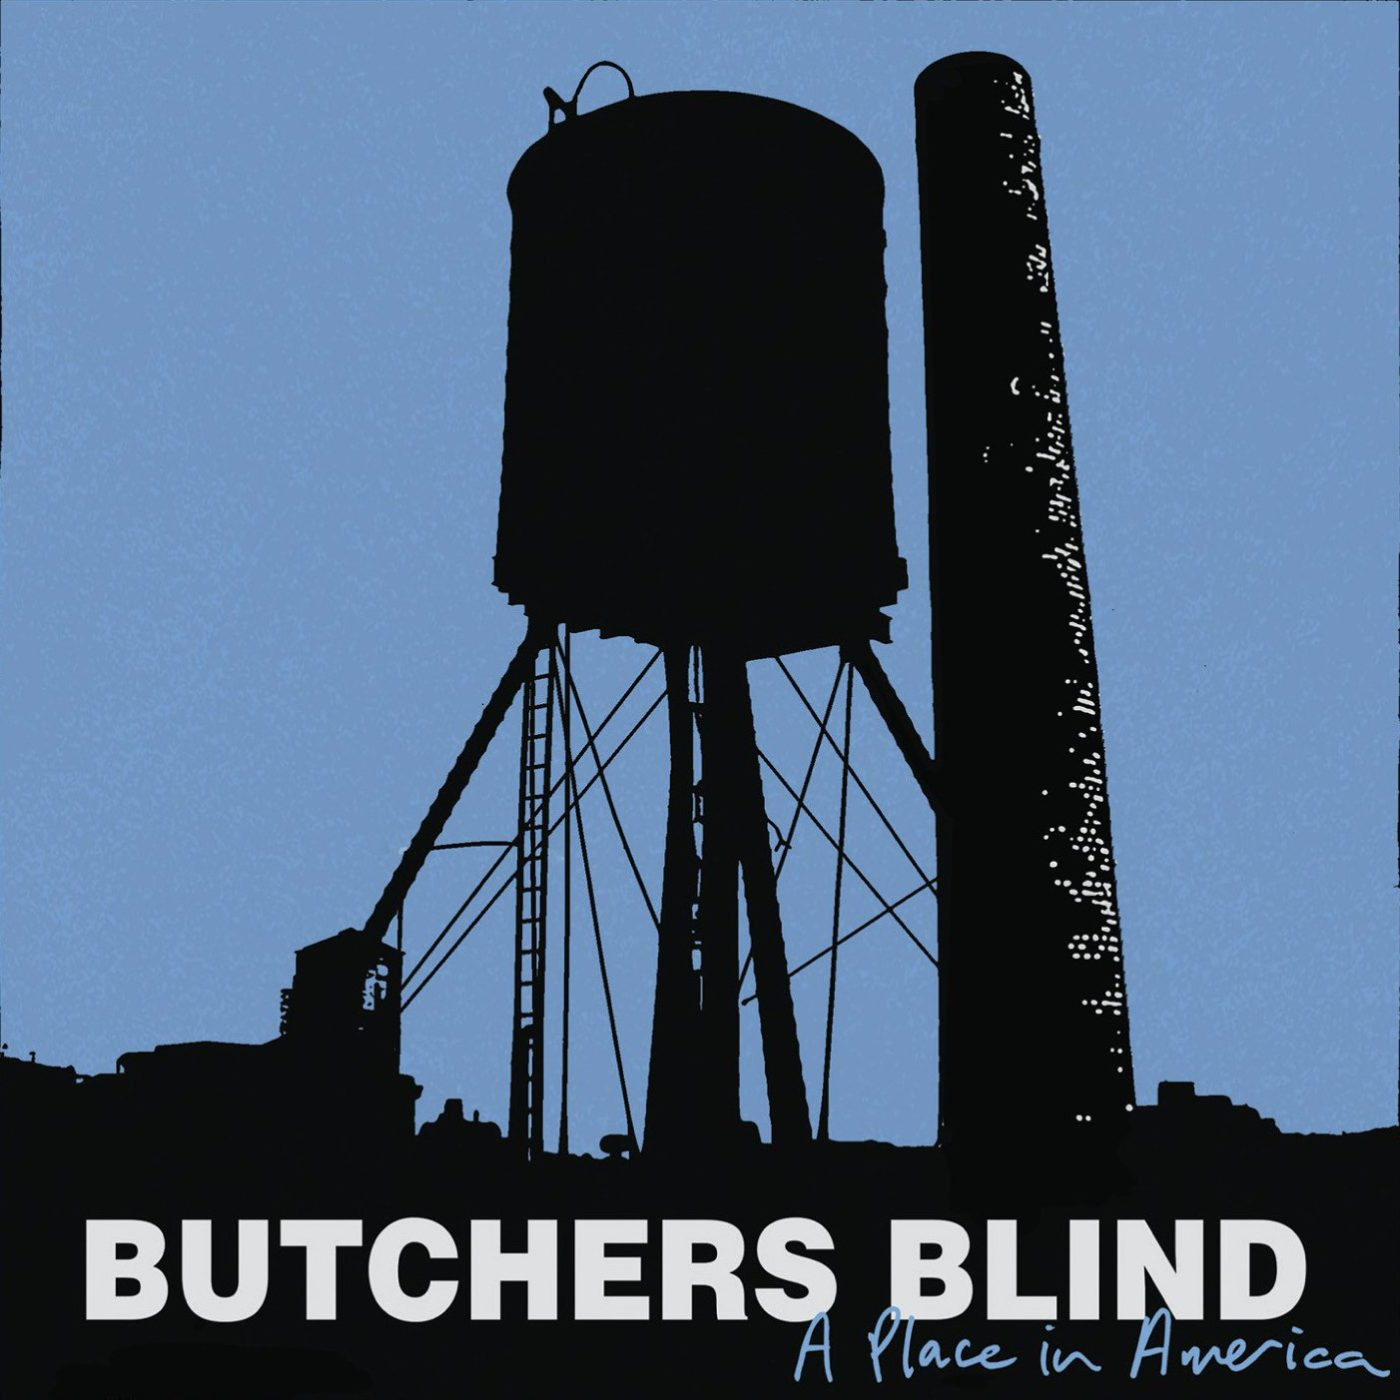 Butchers Blind – A Place in America